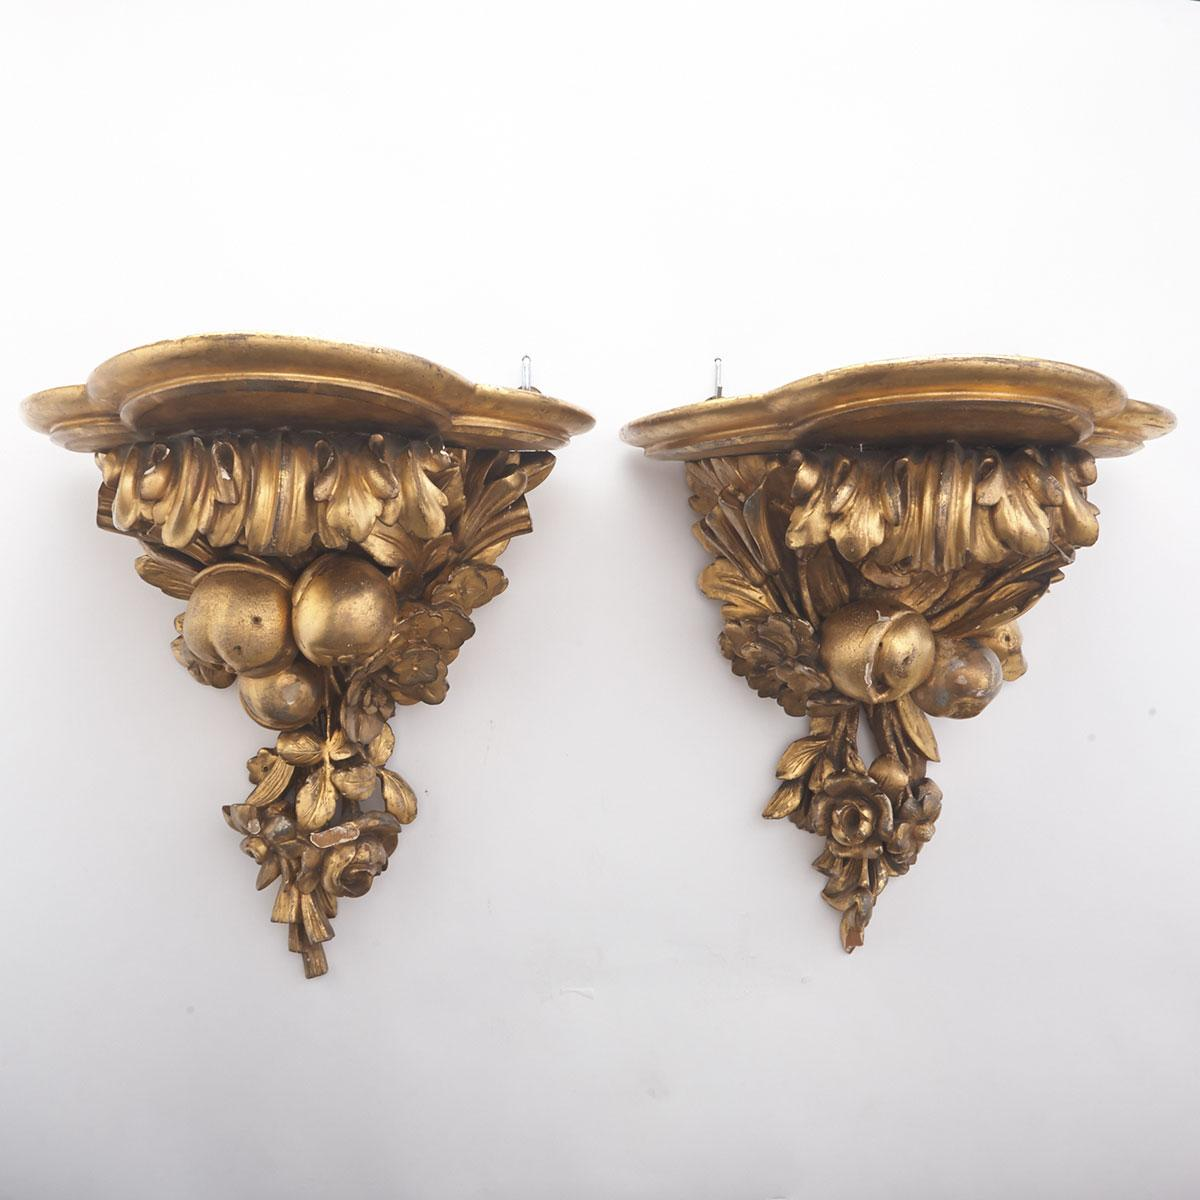 Pair of Florentine Giltwood Wall Brackets, 19th/early 20th century